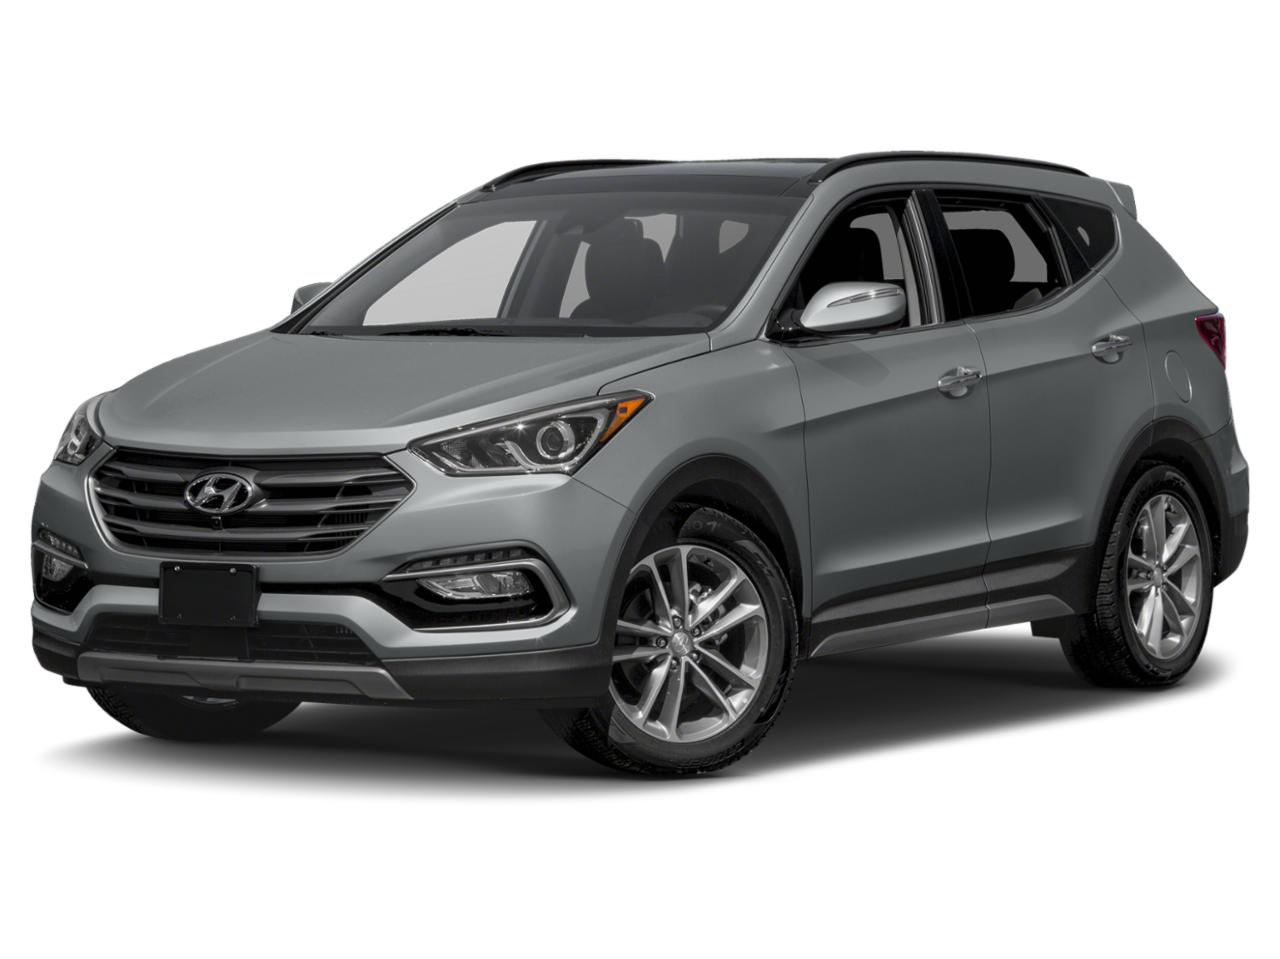 2018 Hyundai Santa Fe Sport Vehicle Photo in Arlington, TX 76011